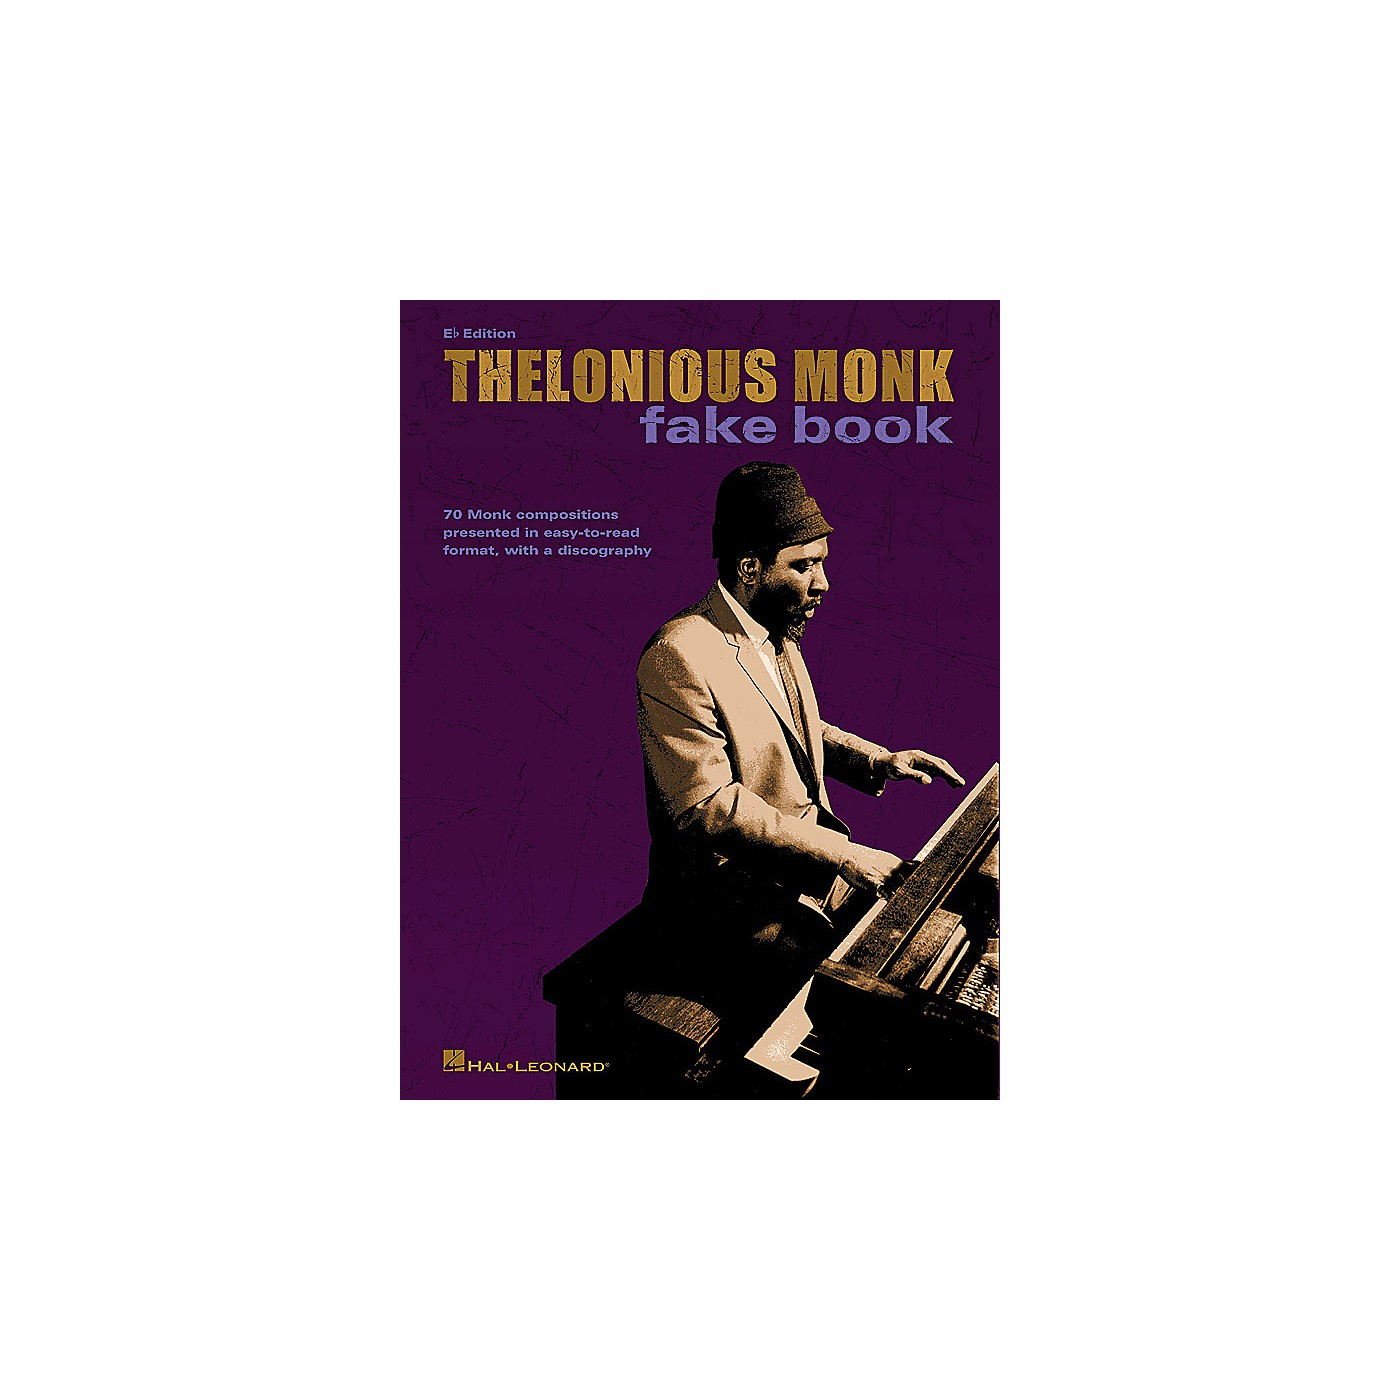 Hal Leonard Thelonious Monk Fake Book (E-flat Edition) Artist Books Series Softcover Performed by Thelonious Monk thumbnail